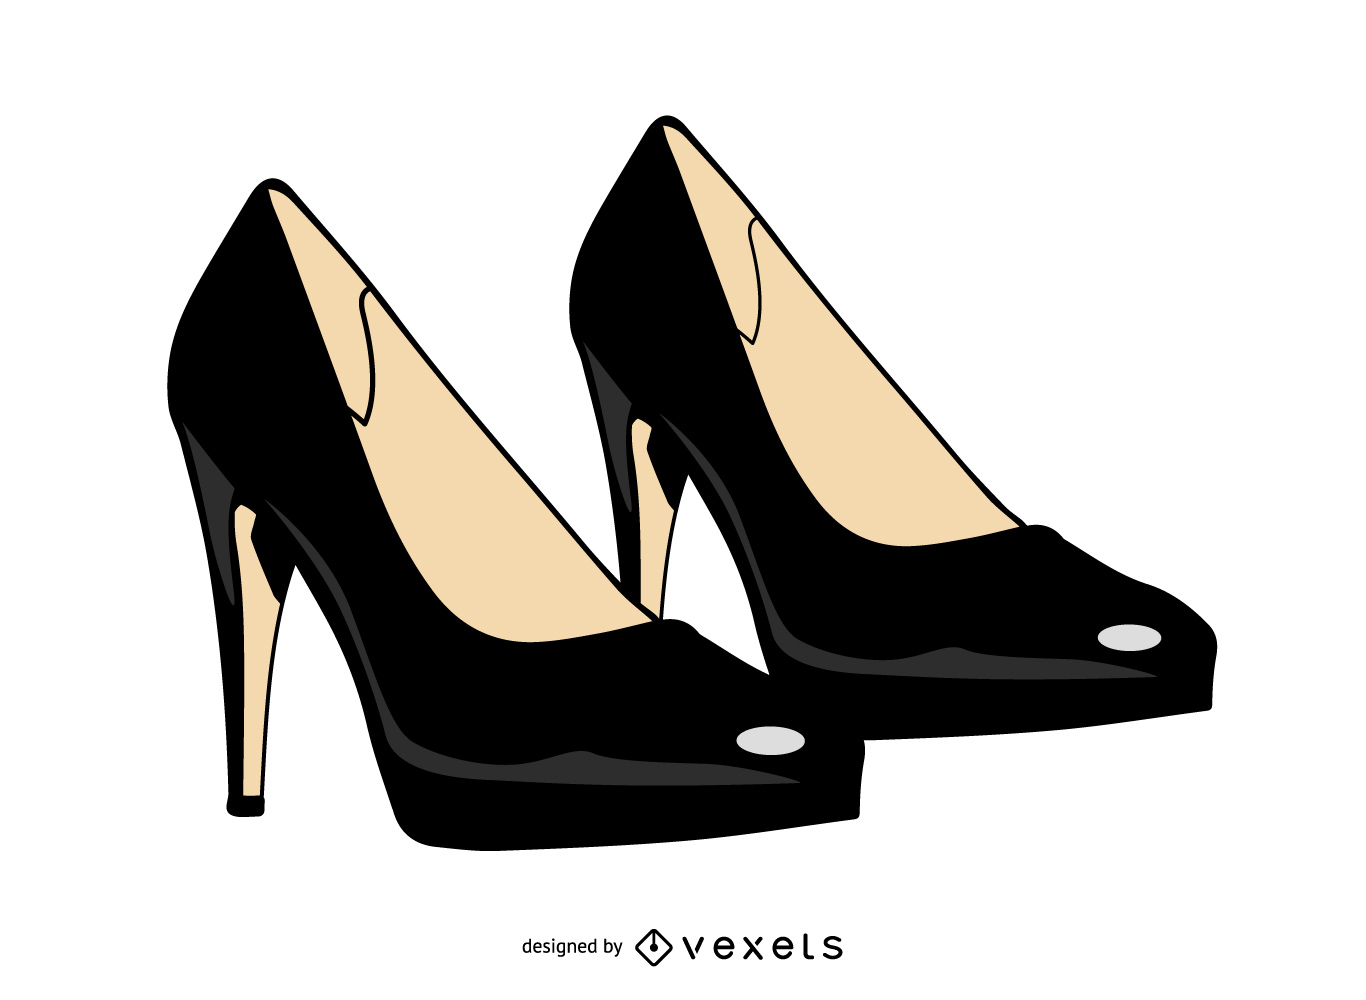 Pair of Women's Fashion Shoes